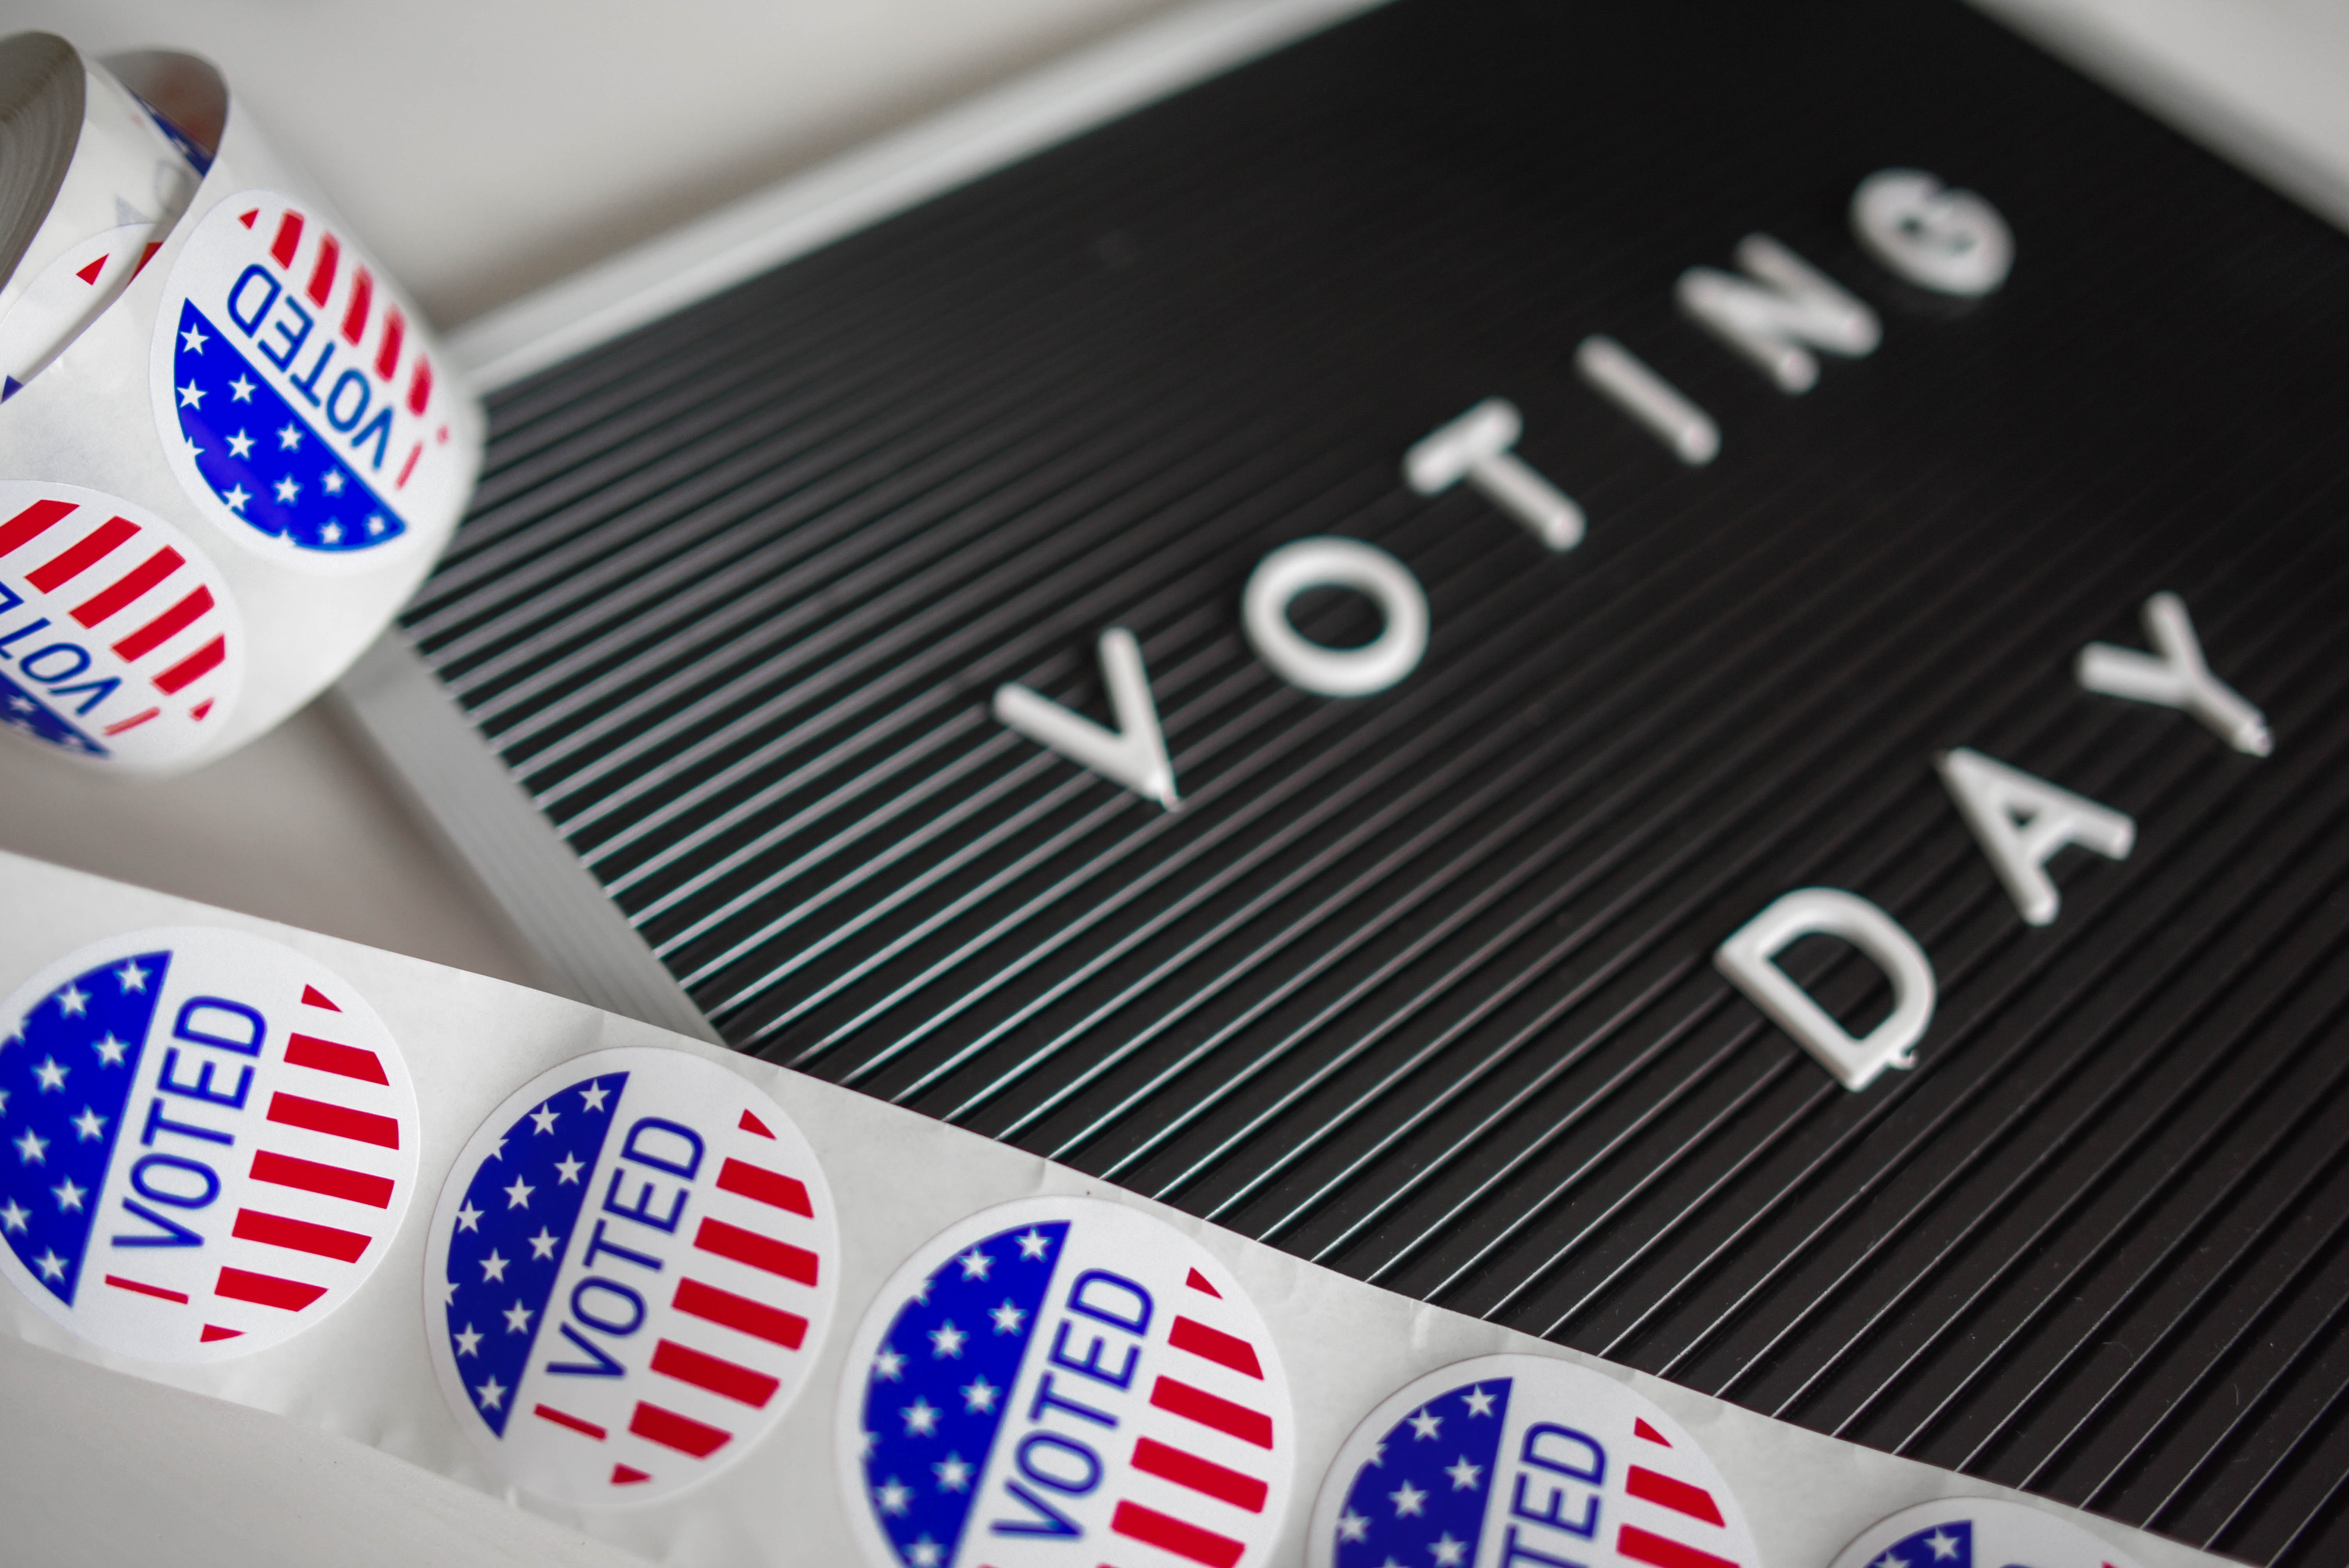 LearnLux financial wellbeing empowers employees to vote in the 2020 election